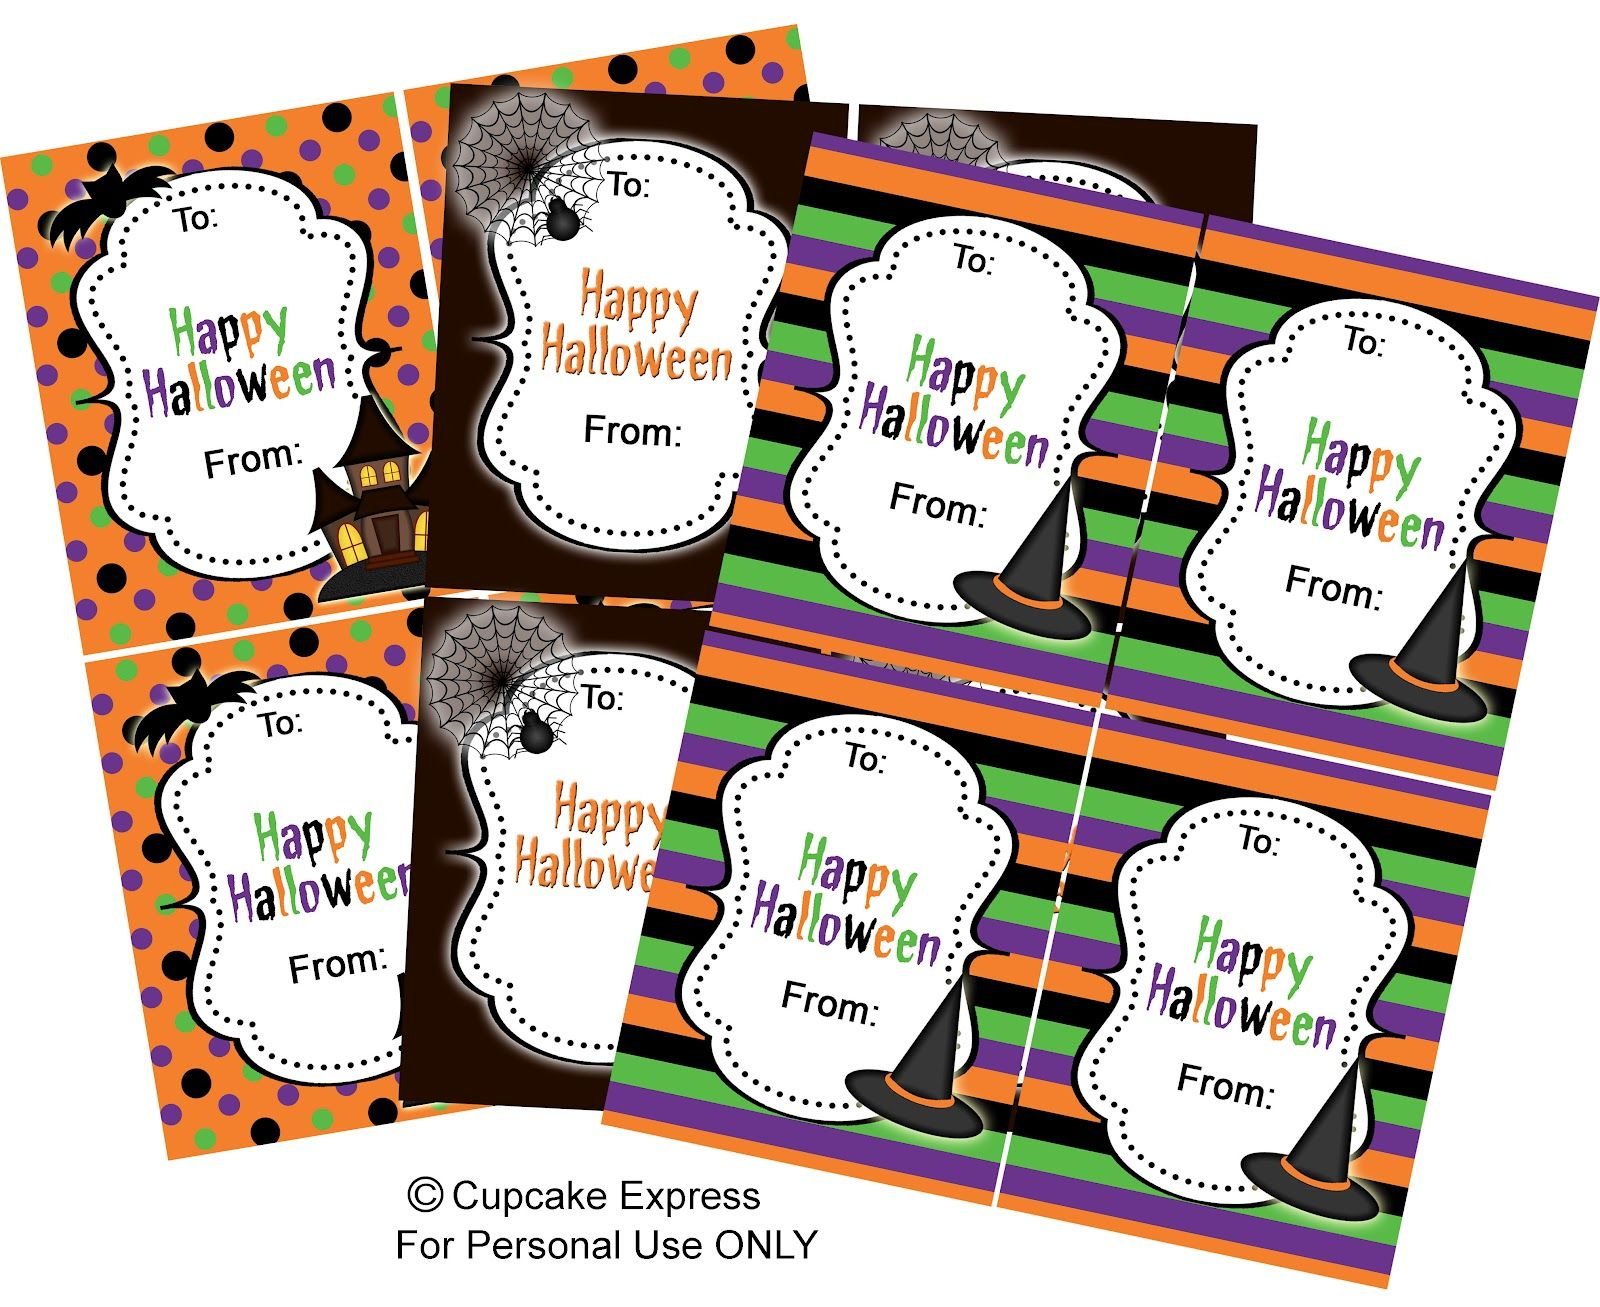 I Made These For My Daughters Halloween Party At School And They Turned Out Really Cute Th Halloween Labels Printable Halloween Labels Printable Halloween Tags